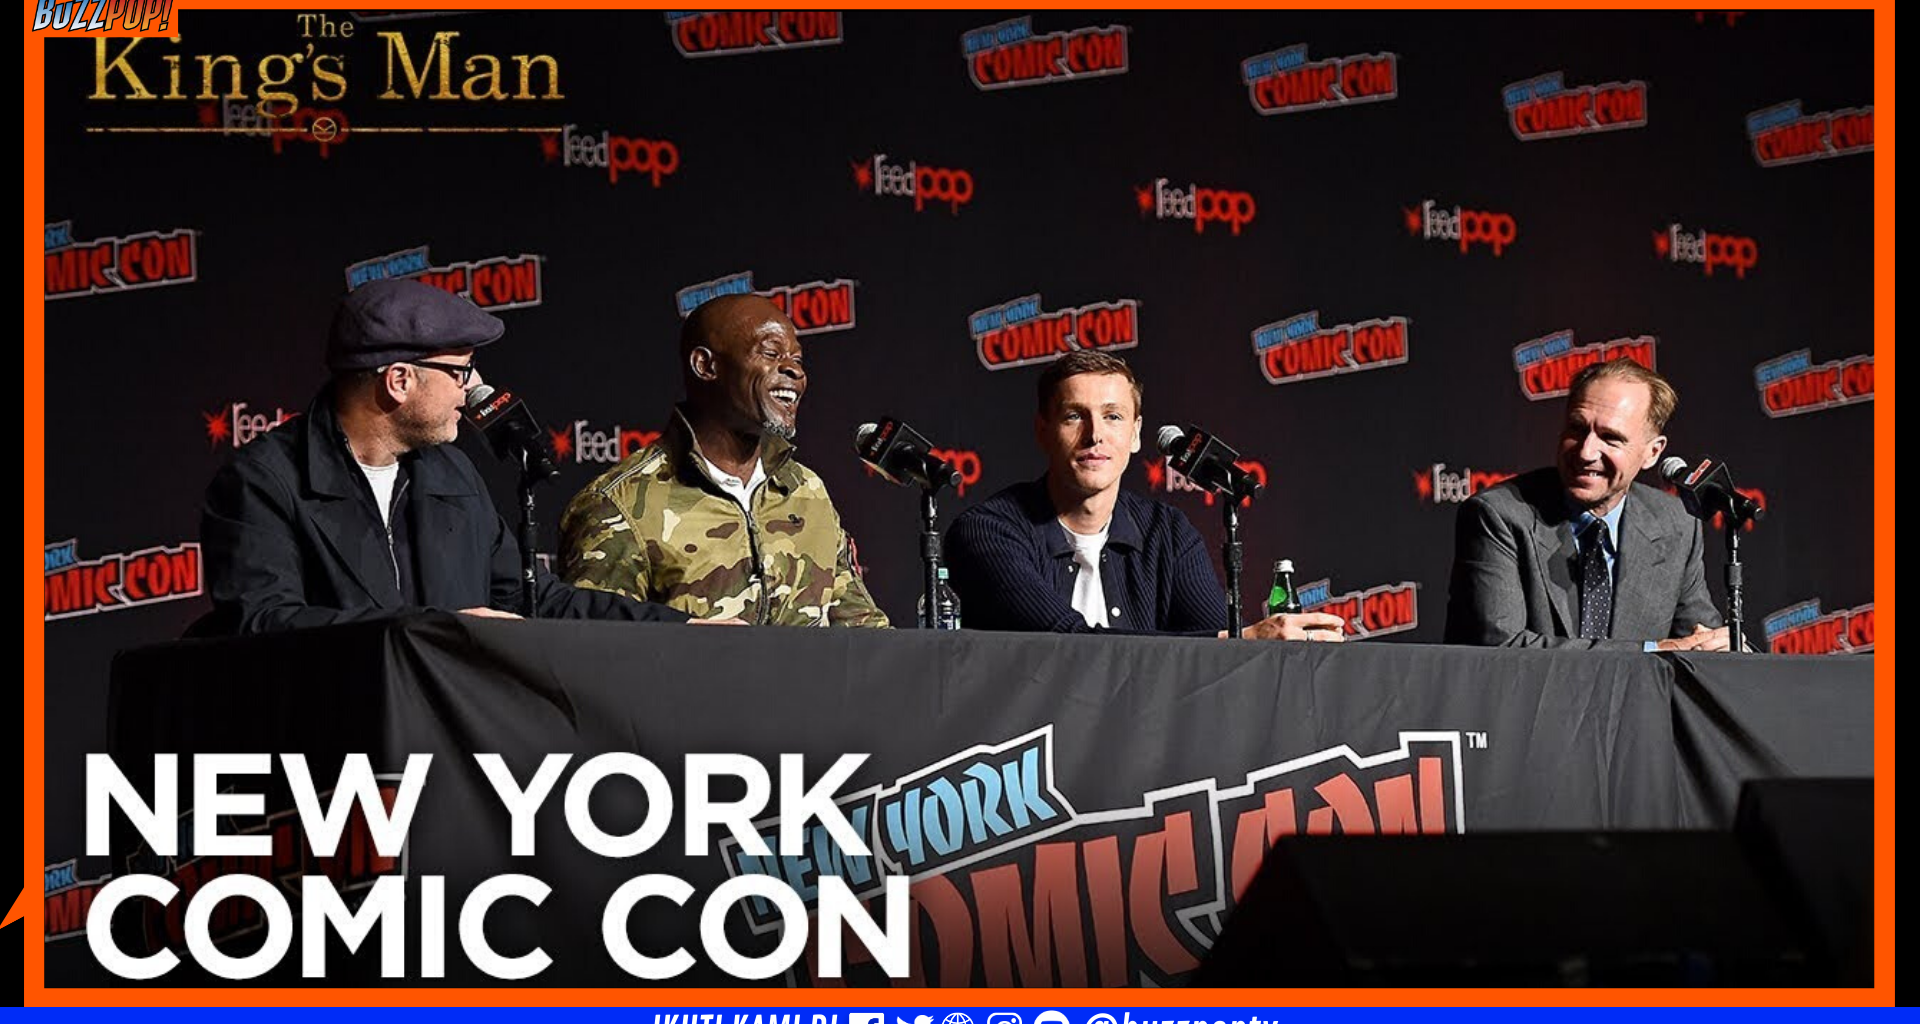 NYCC2019 - THE KING'S MAN Panel